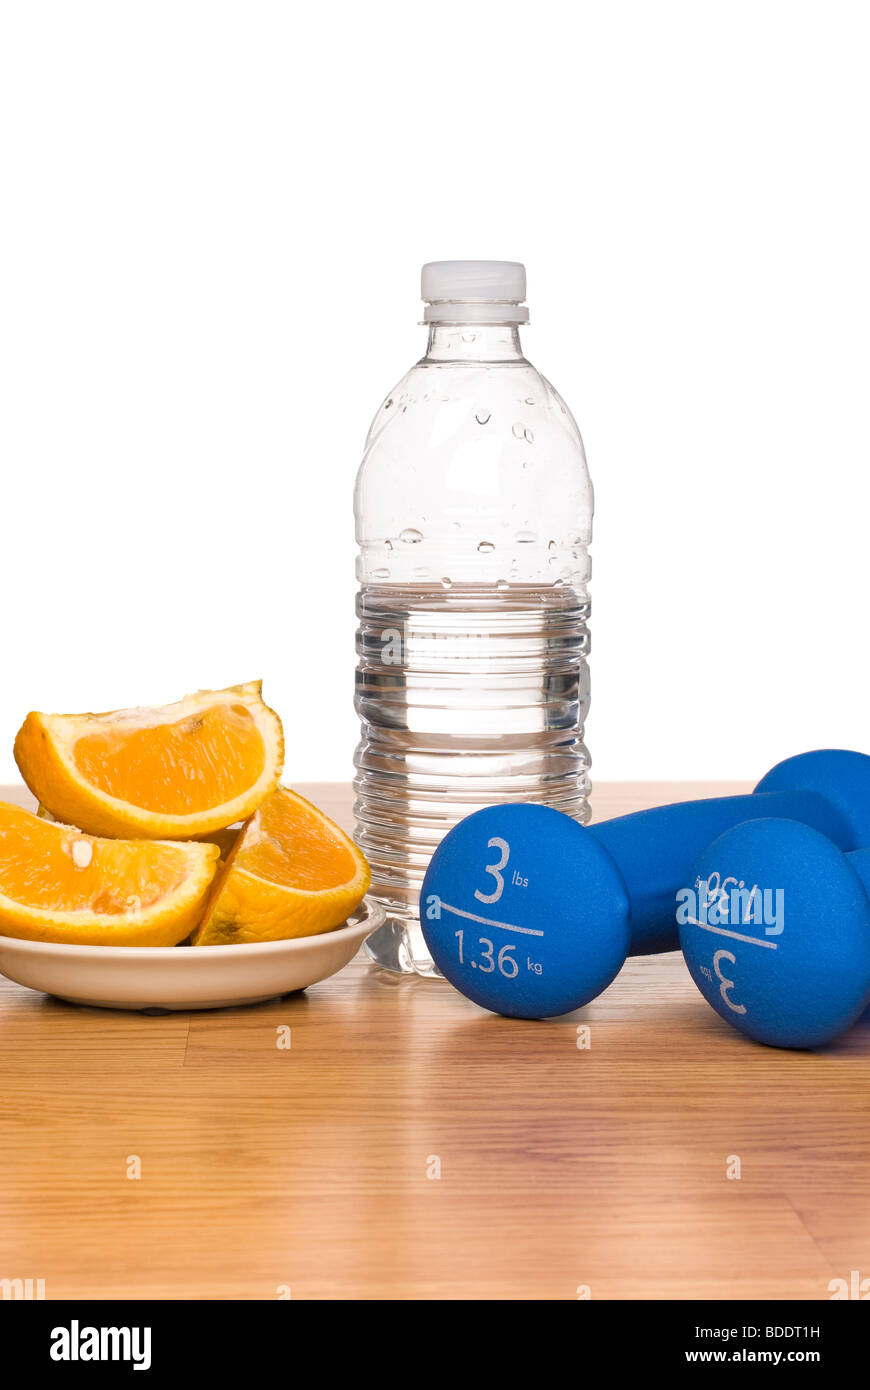 A conceptual image of healthy living including exercise equipment, a bottle of water and a sliced orange. - Stock Image